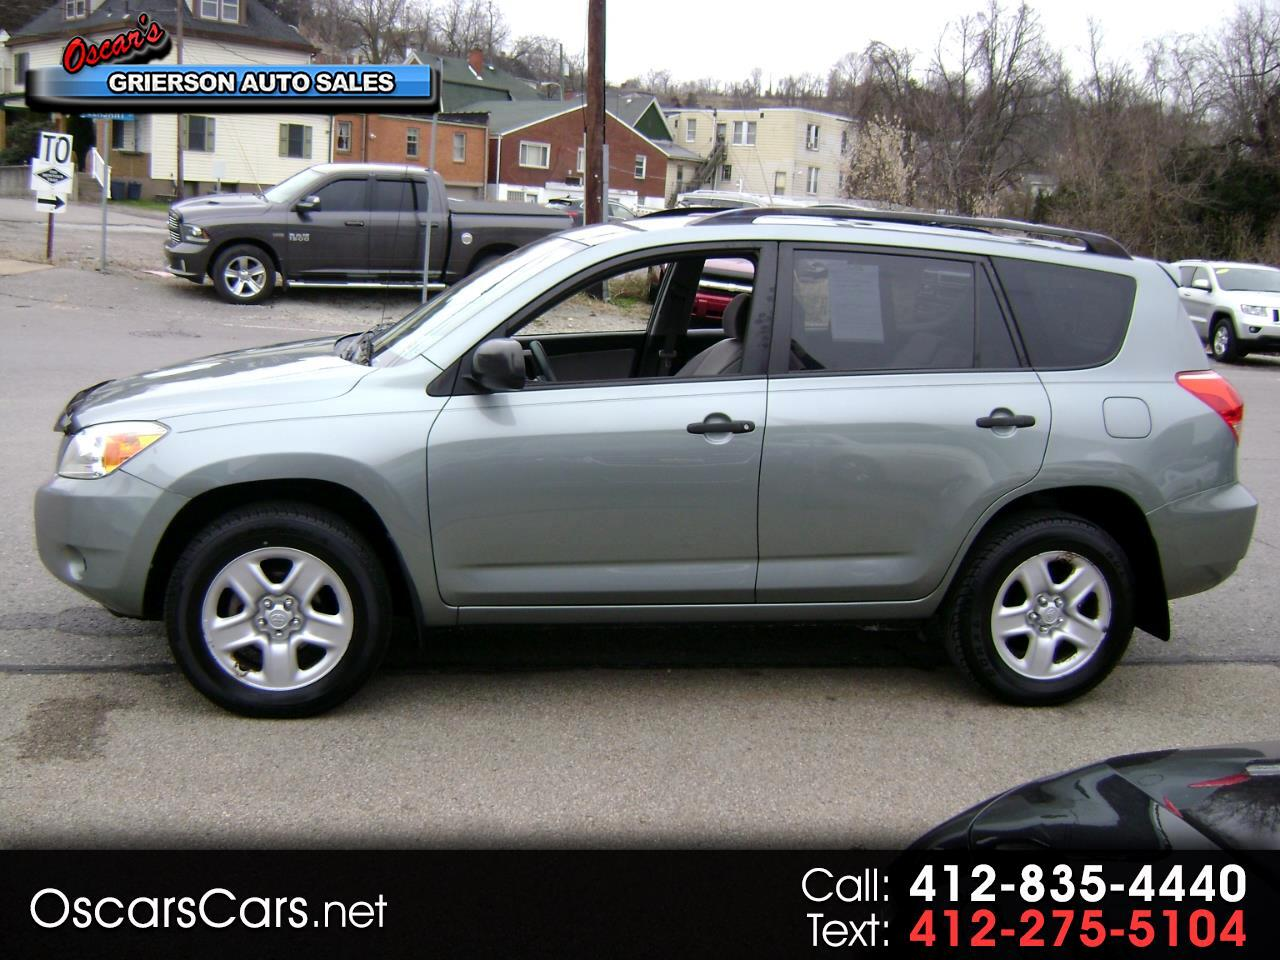 2008 Toyota RAV4 4WD 4dr 4-cyl 4-Spd AT (Natl)